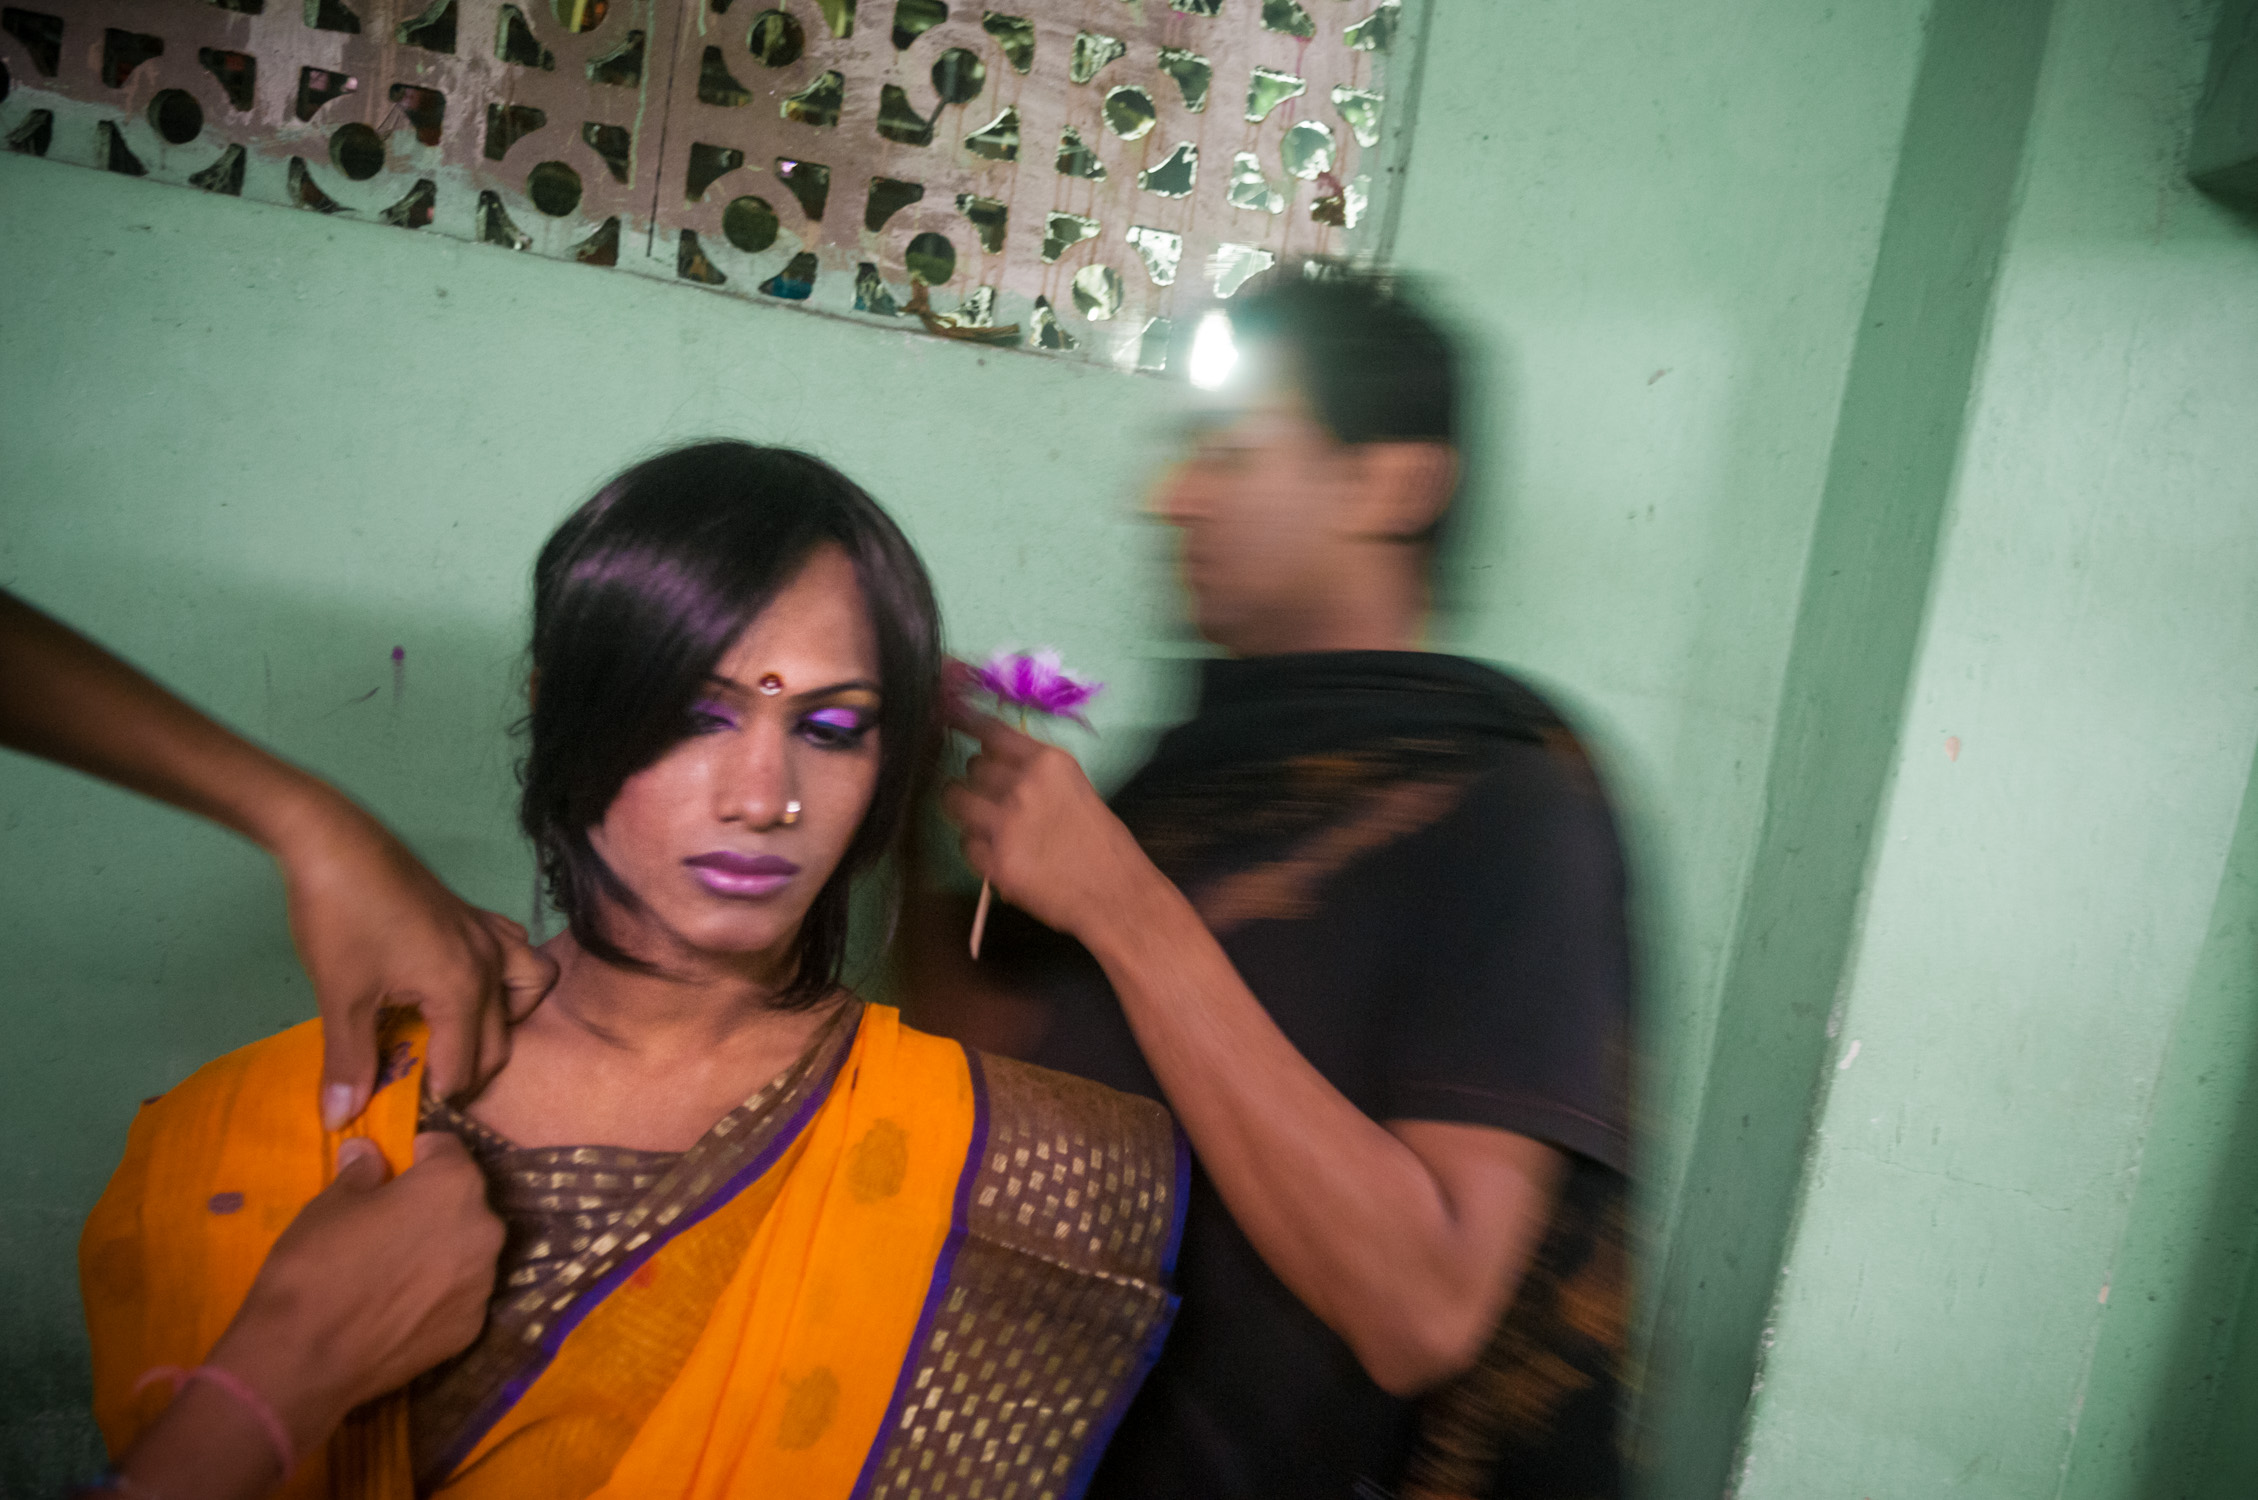 6_Chhandak Pradhan-reportage-Lipstick Men-transgender_dancer_India_Calcutta.jpg